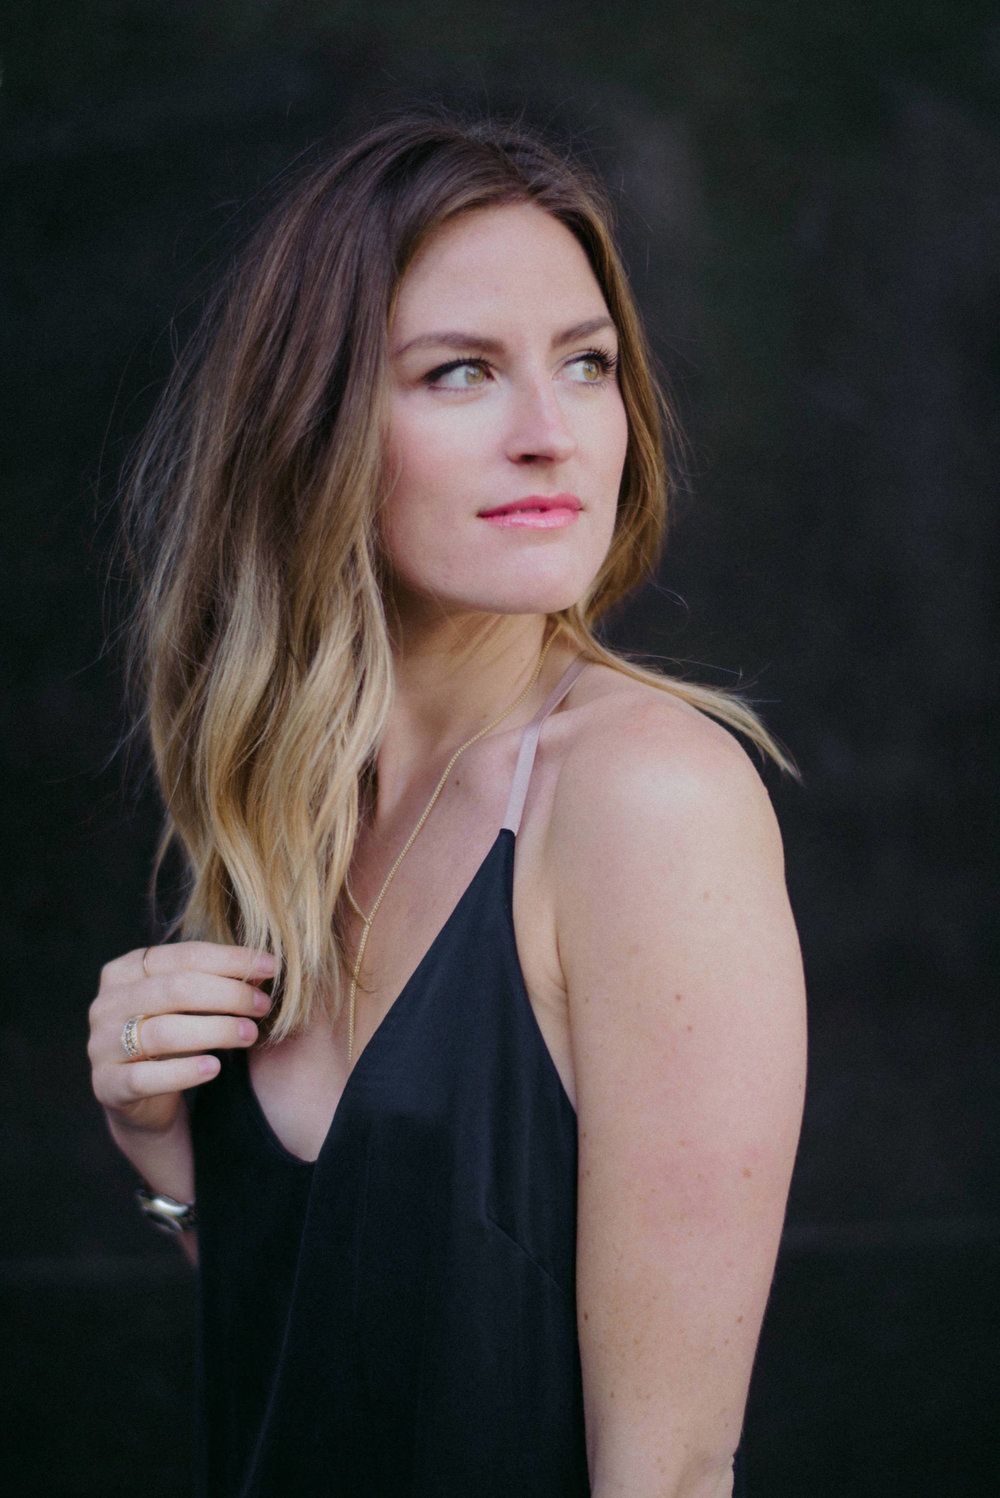 Sillk nightgown as party dress // A Week Of  Nashville-Chic Ethical Outfits With Jordan Soderholm, Fashion Director At ABLE on The Good Trade